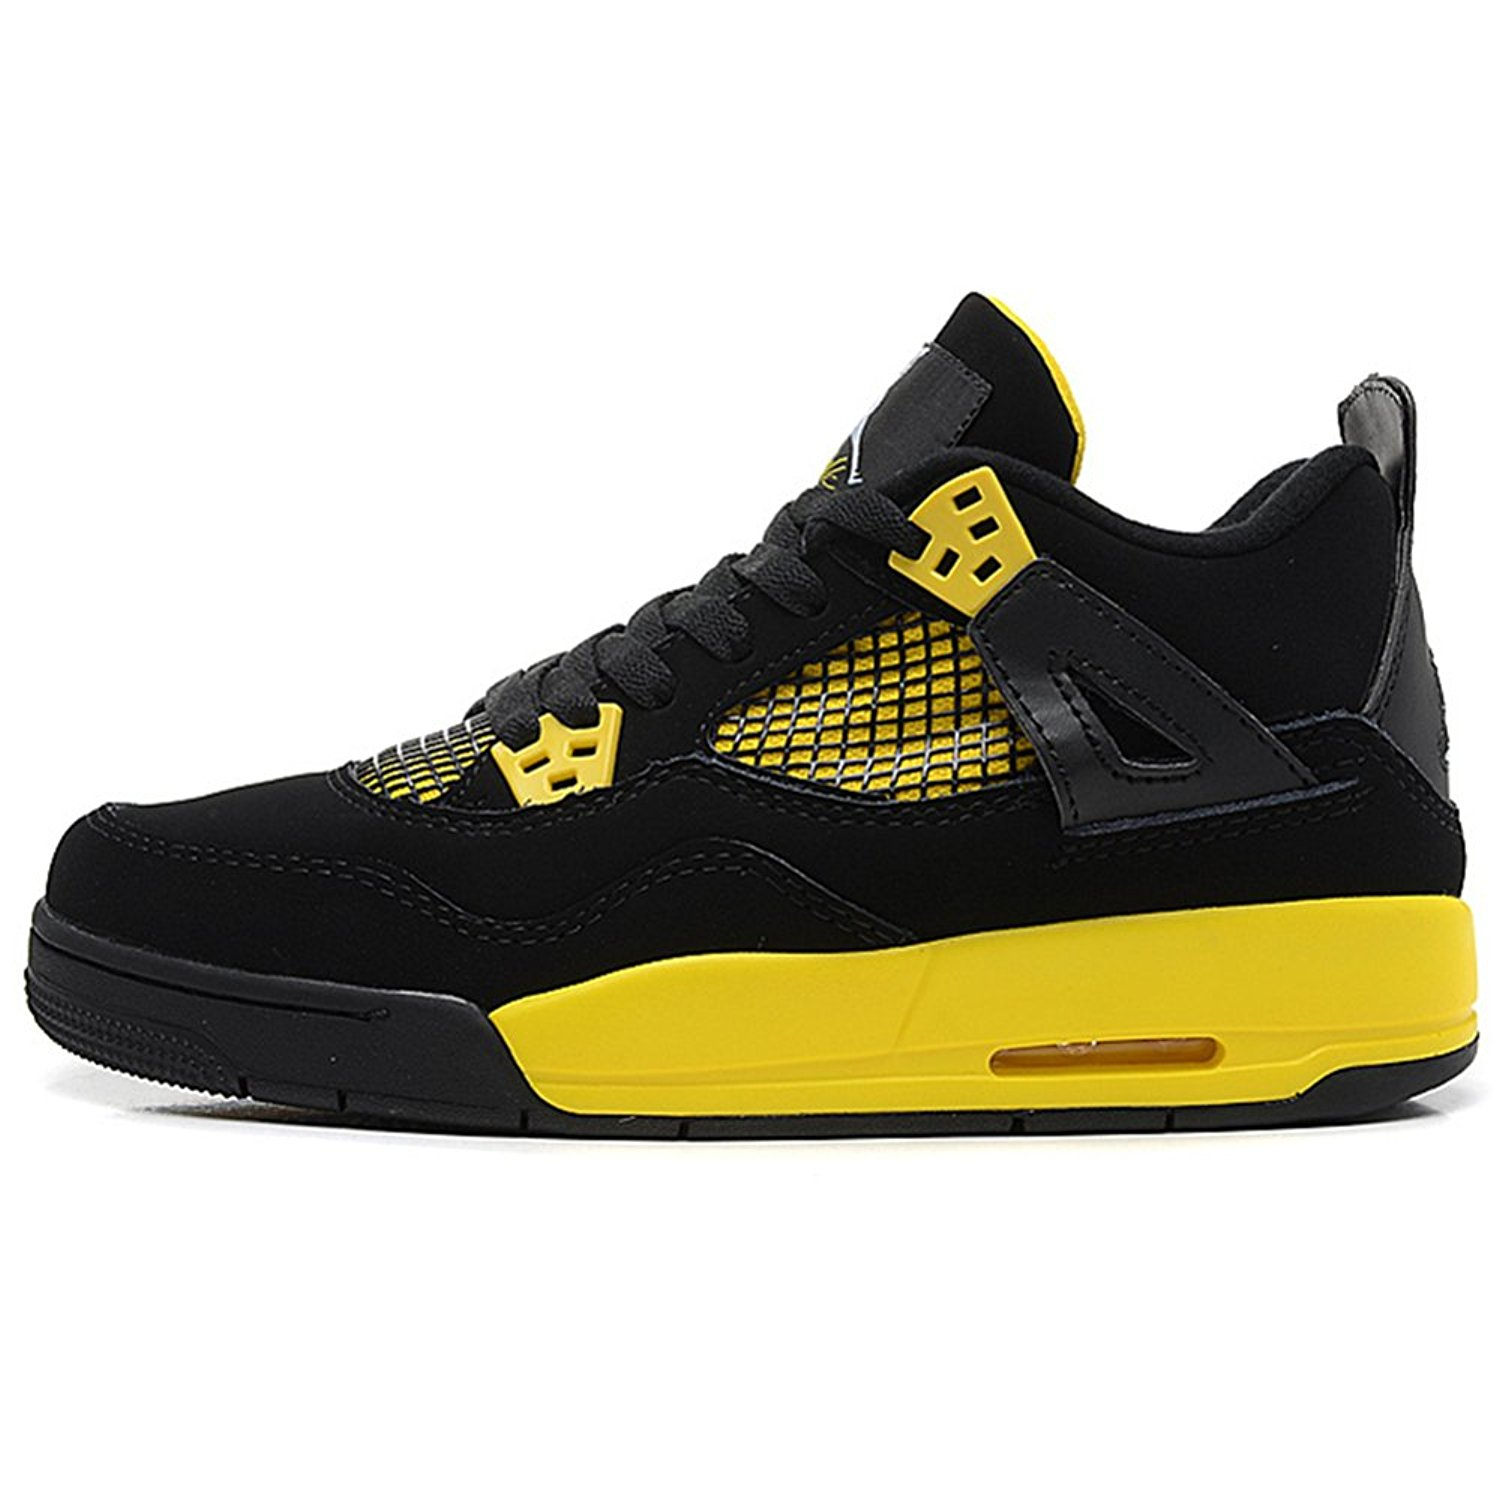 5b29d78d010 Get Quotations · TYCMG Jordan 4 Generations Jordan 4 Retro Thunder Black  Basketball Running shoe